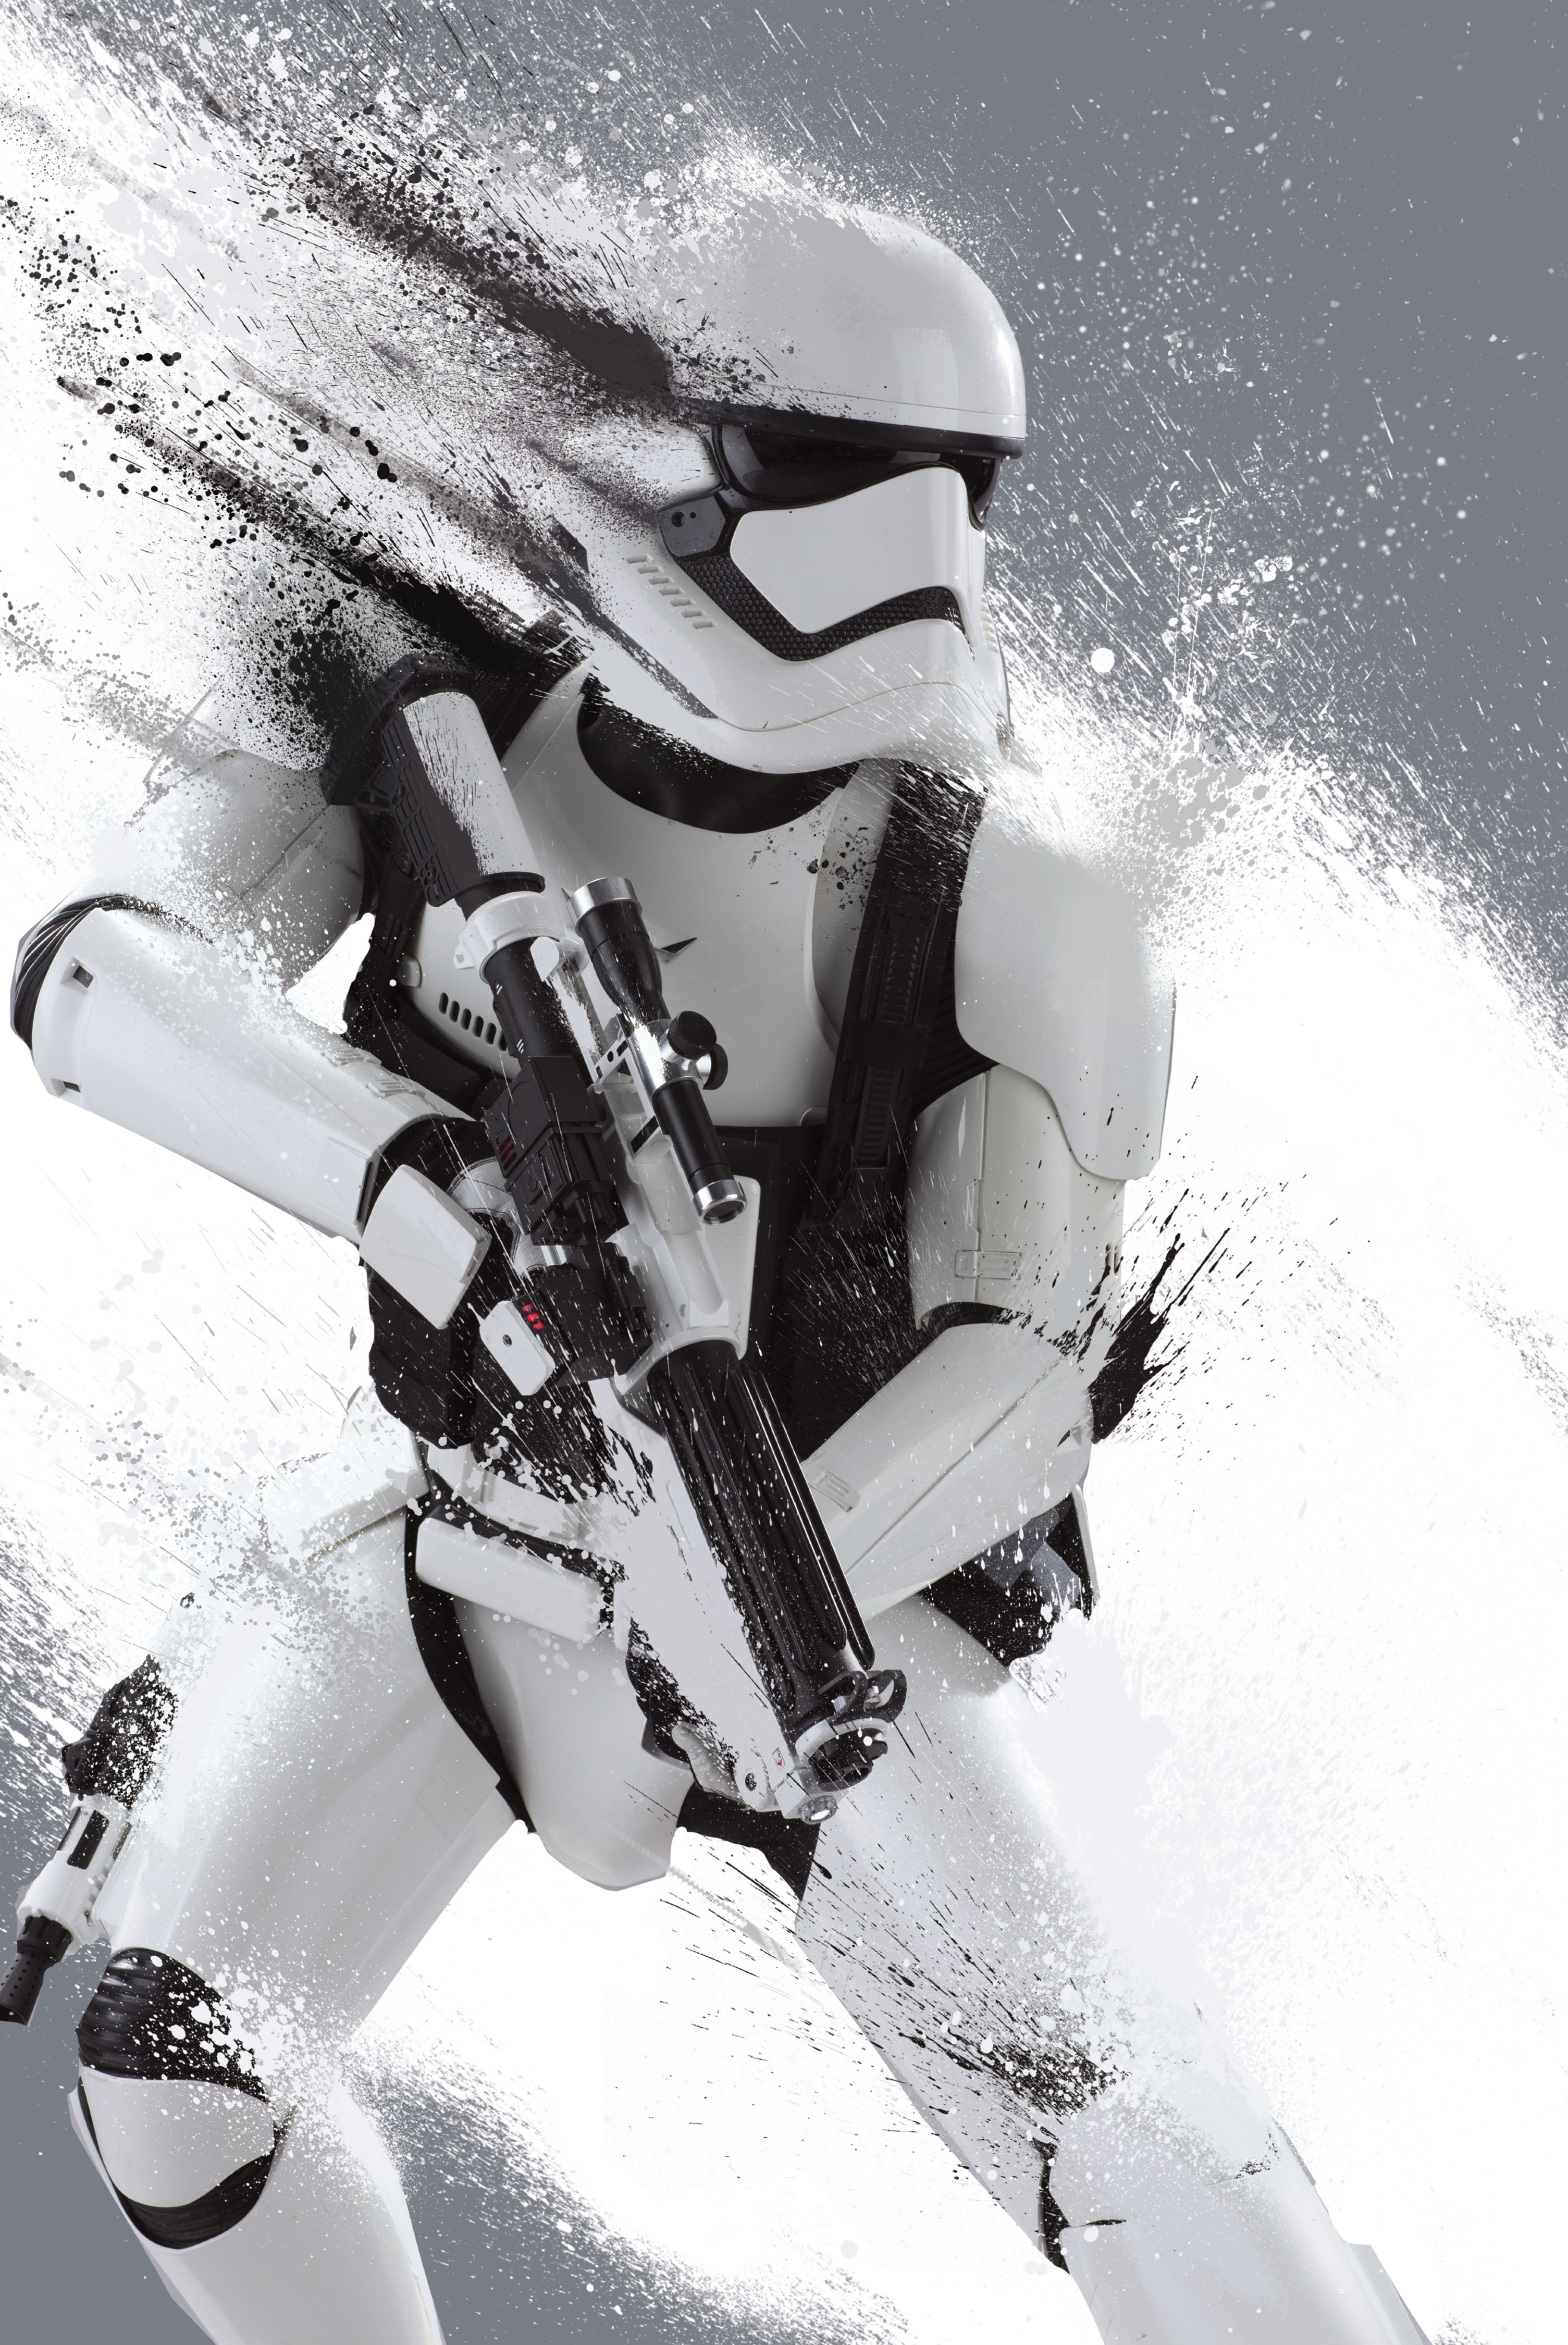 First Order Trooper 3009 X 4500 Px Star Wars Poster Star Wars Episodes Star Wars Episode Vii